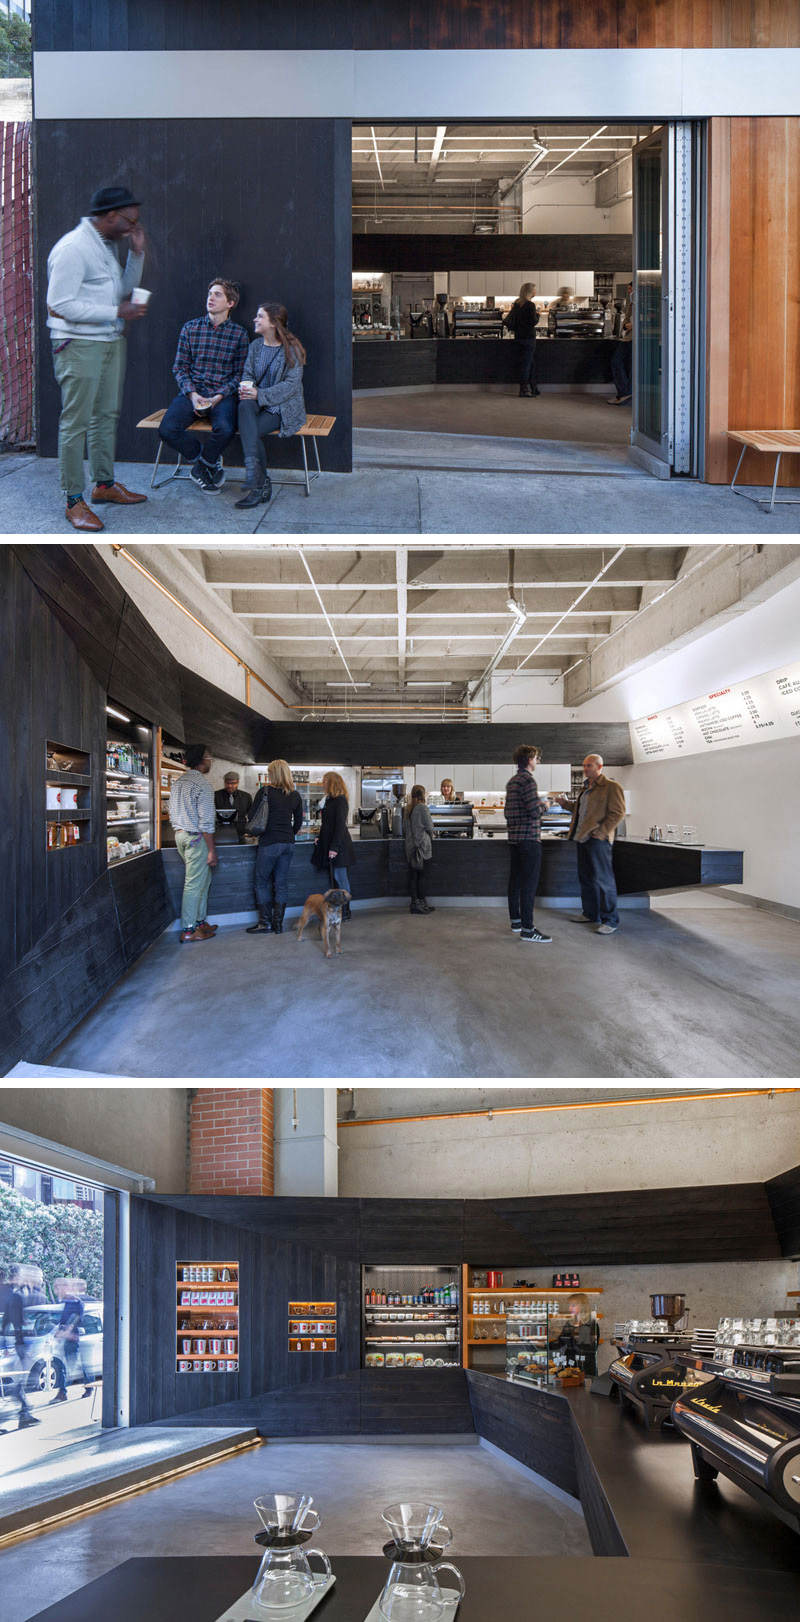 jones | haydu designed the Coffee Bar, a cafe in the Financial District of San Francisco with a modern, unique vibe that brought life into a space that had been empty for over twenty years.